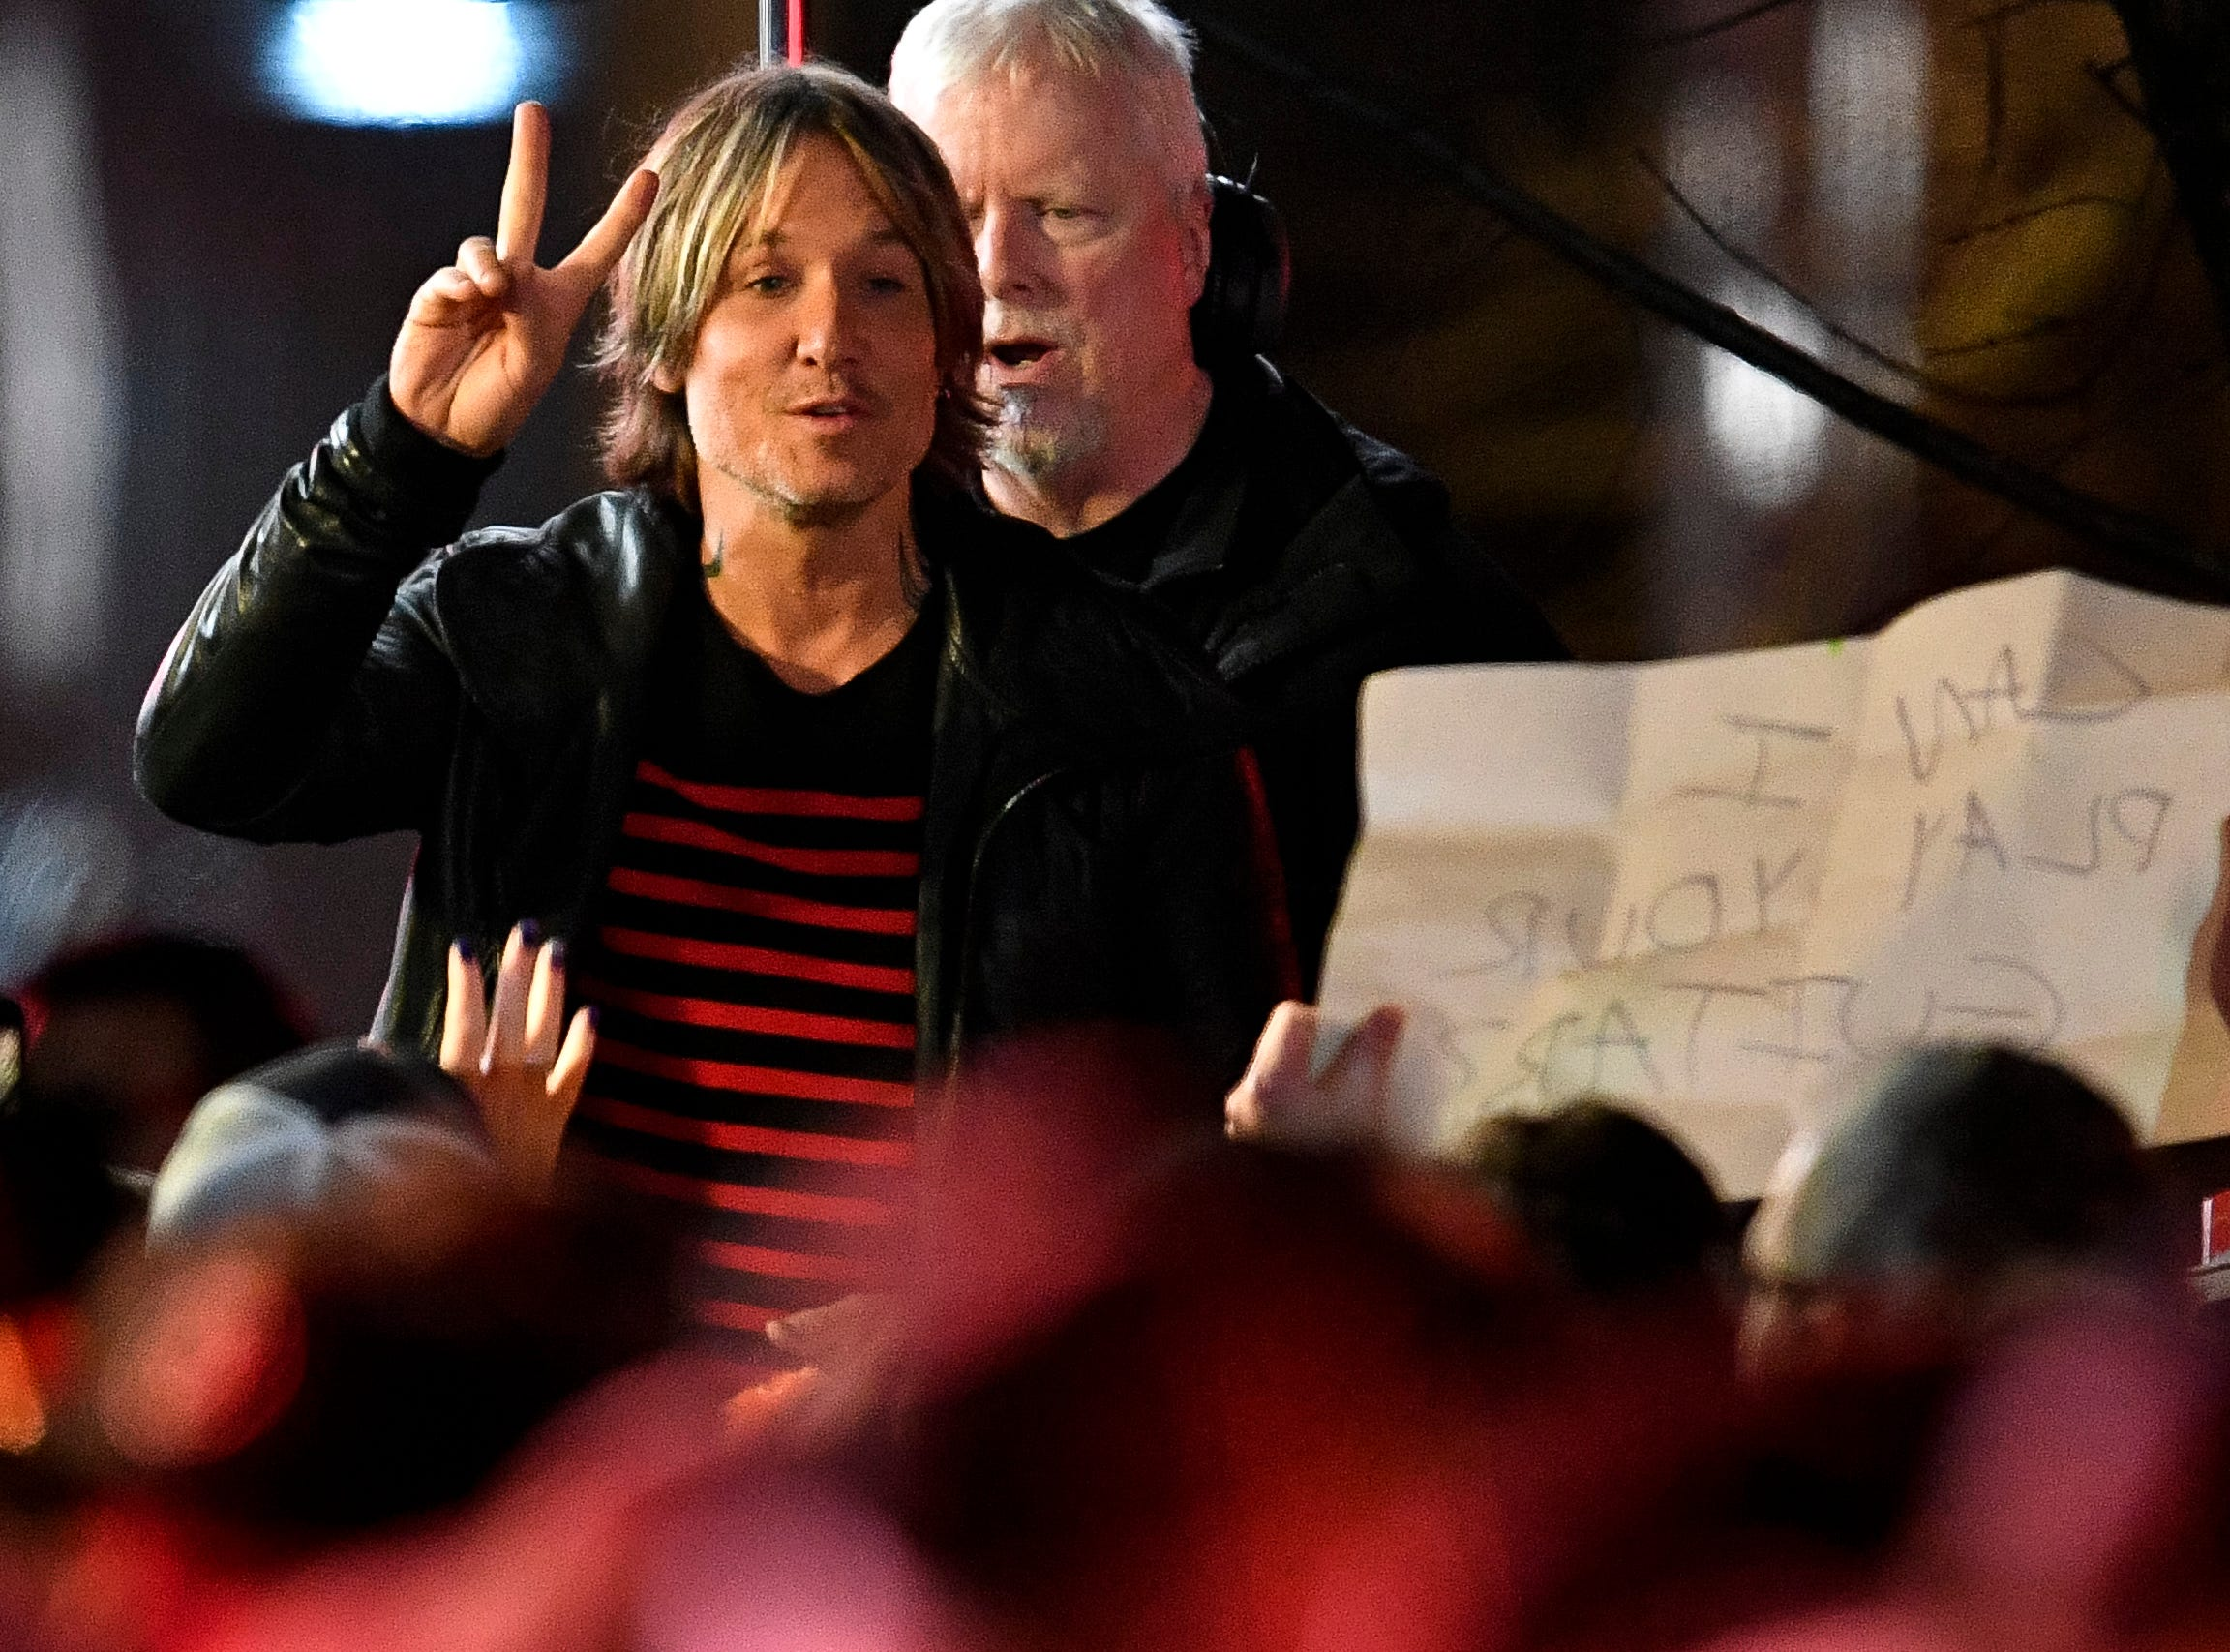 Keith Urban waves to fans during the Jack Daniel's Music City Midnight: New Year's Eve event at Bicentennial Capitol Mall State Park in Nashville, Tenn., Monday, Dec. 31, 2018.